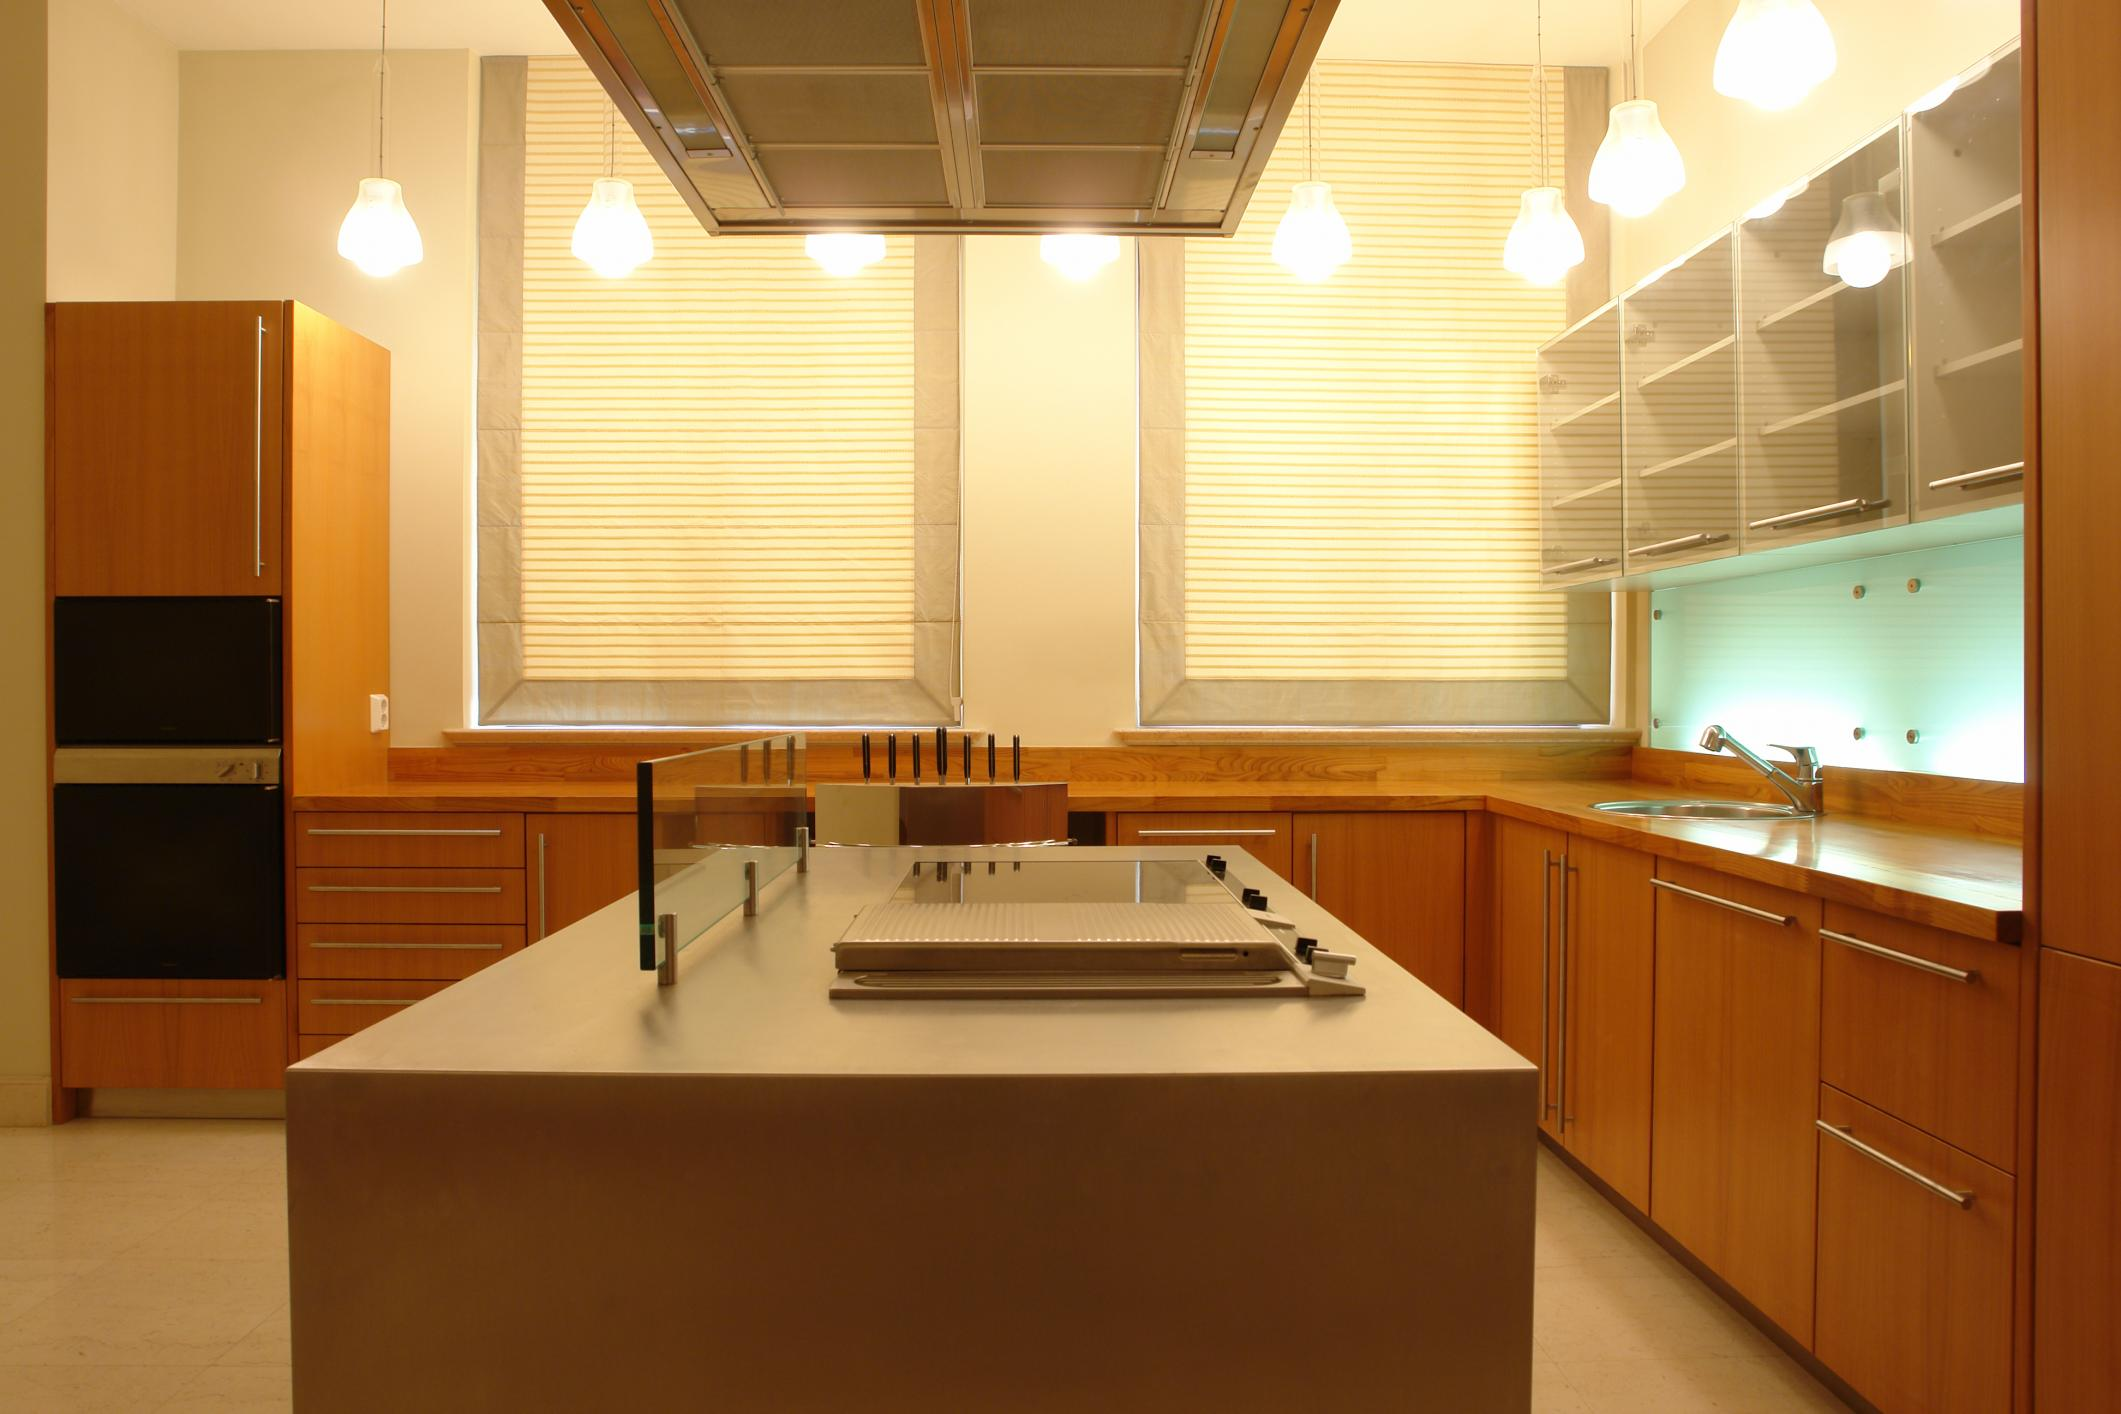 Concord Home Improvements and Remodeling - Kitchen Remodel 2